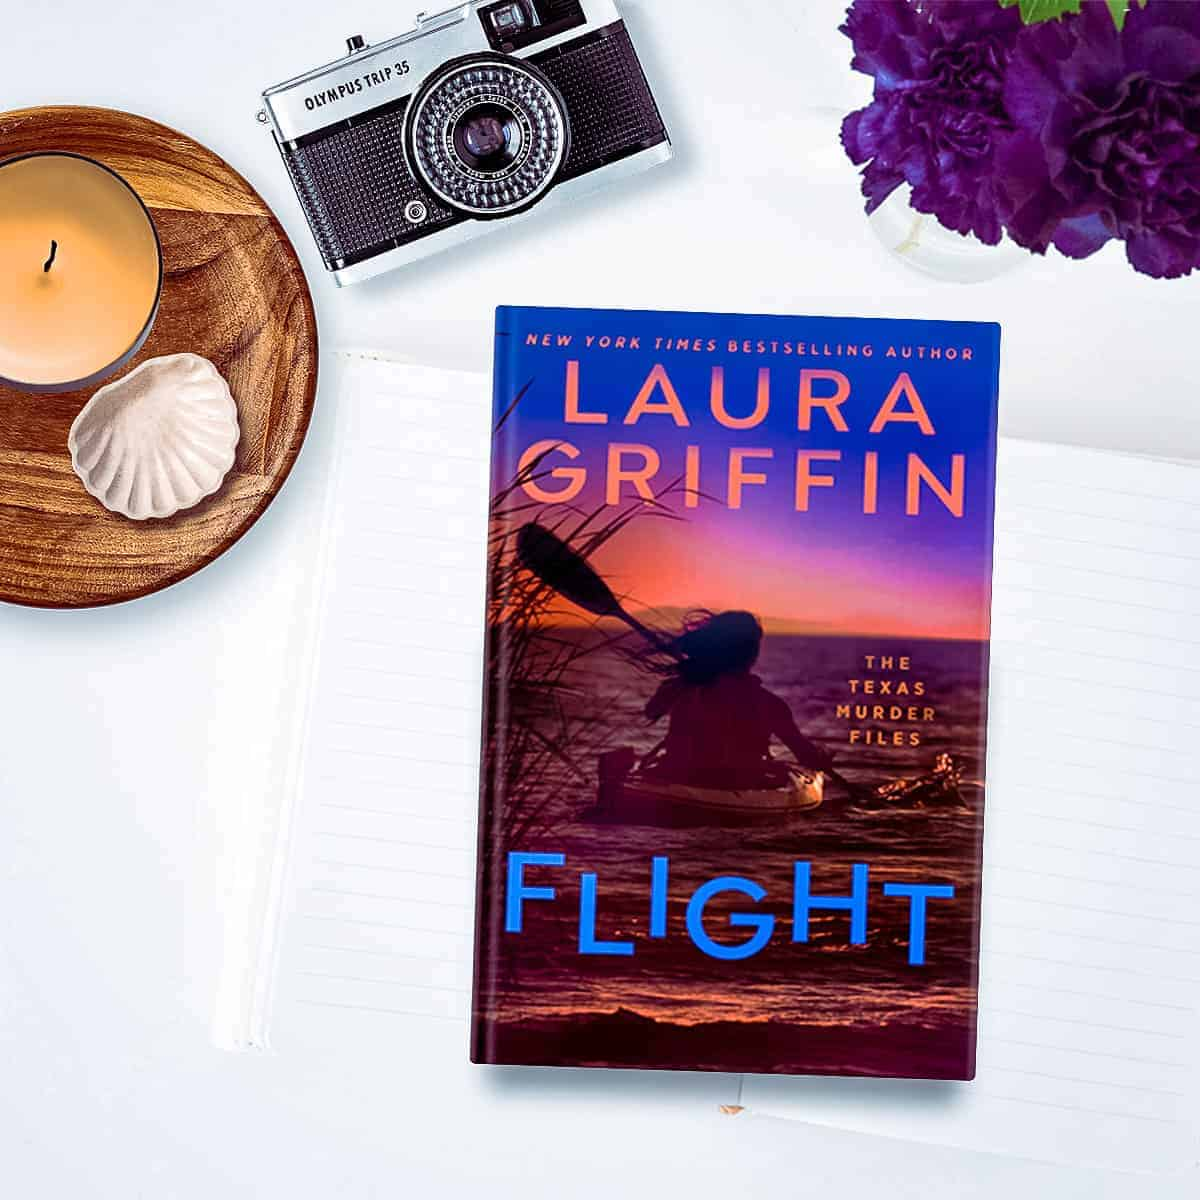 Laura Griffin is back with Flight, Book 2 in The Texas Murder Files series—a romantic suspense that will keep you glued to the pages with its twists and turns